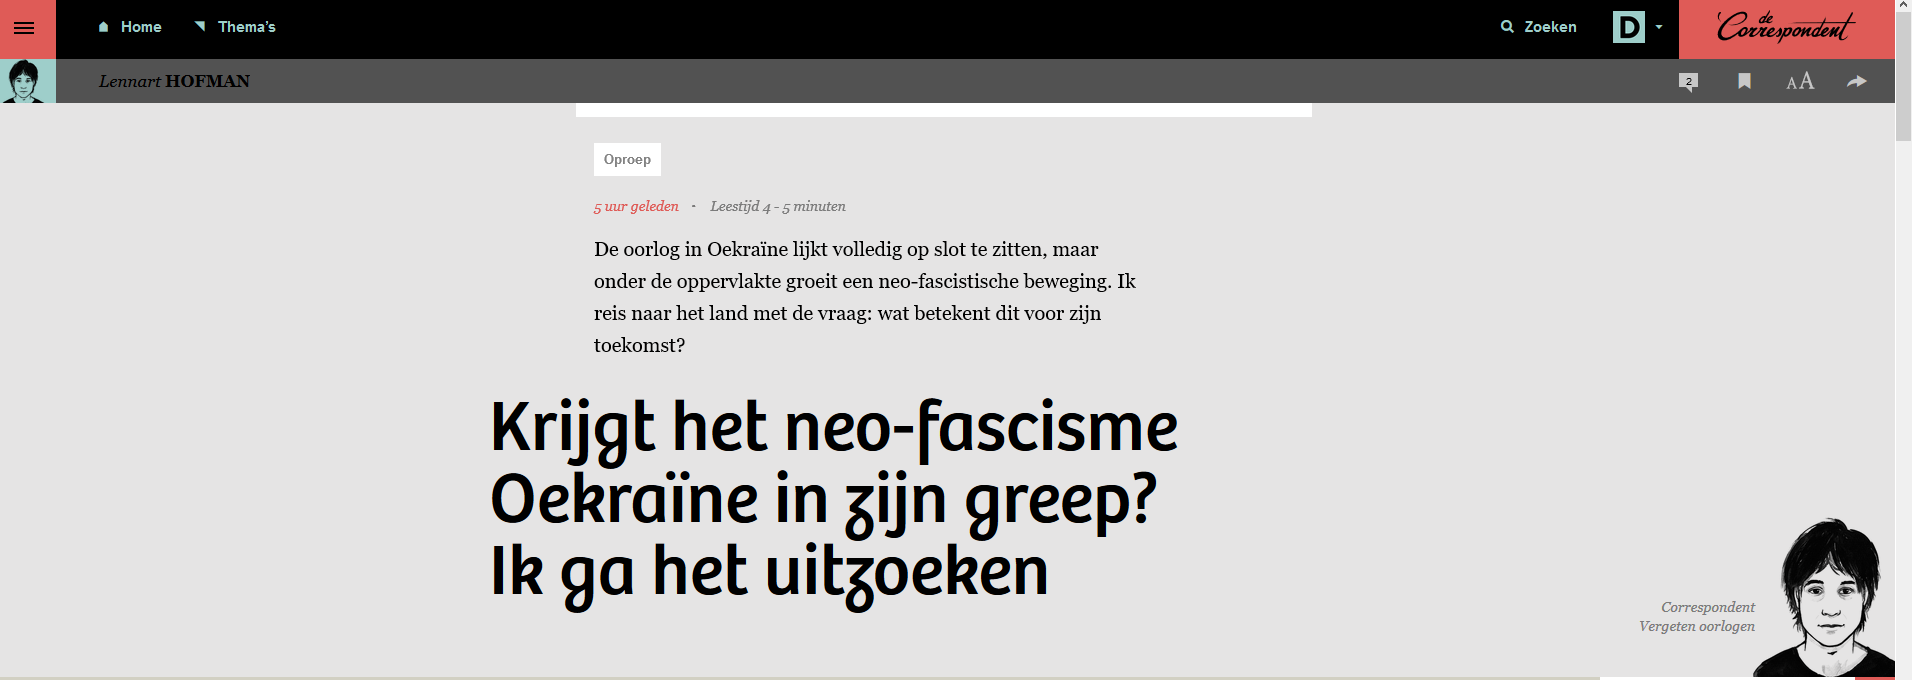 Journalistieke Innovatie